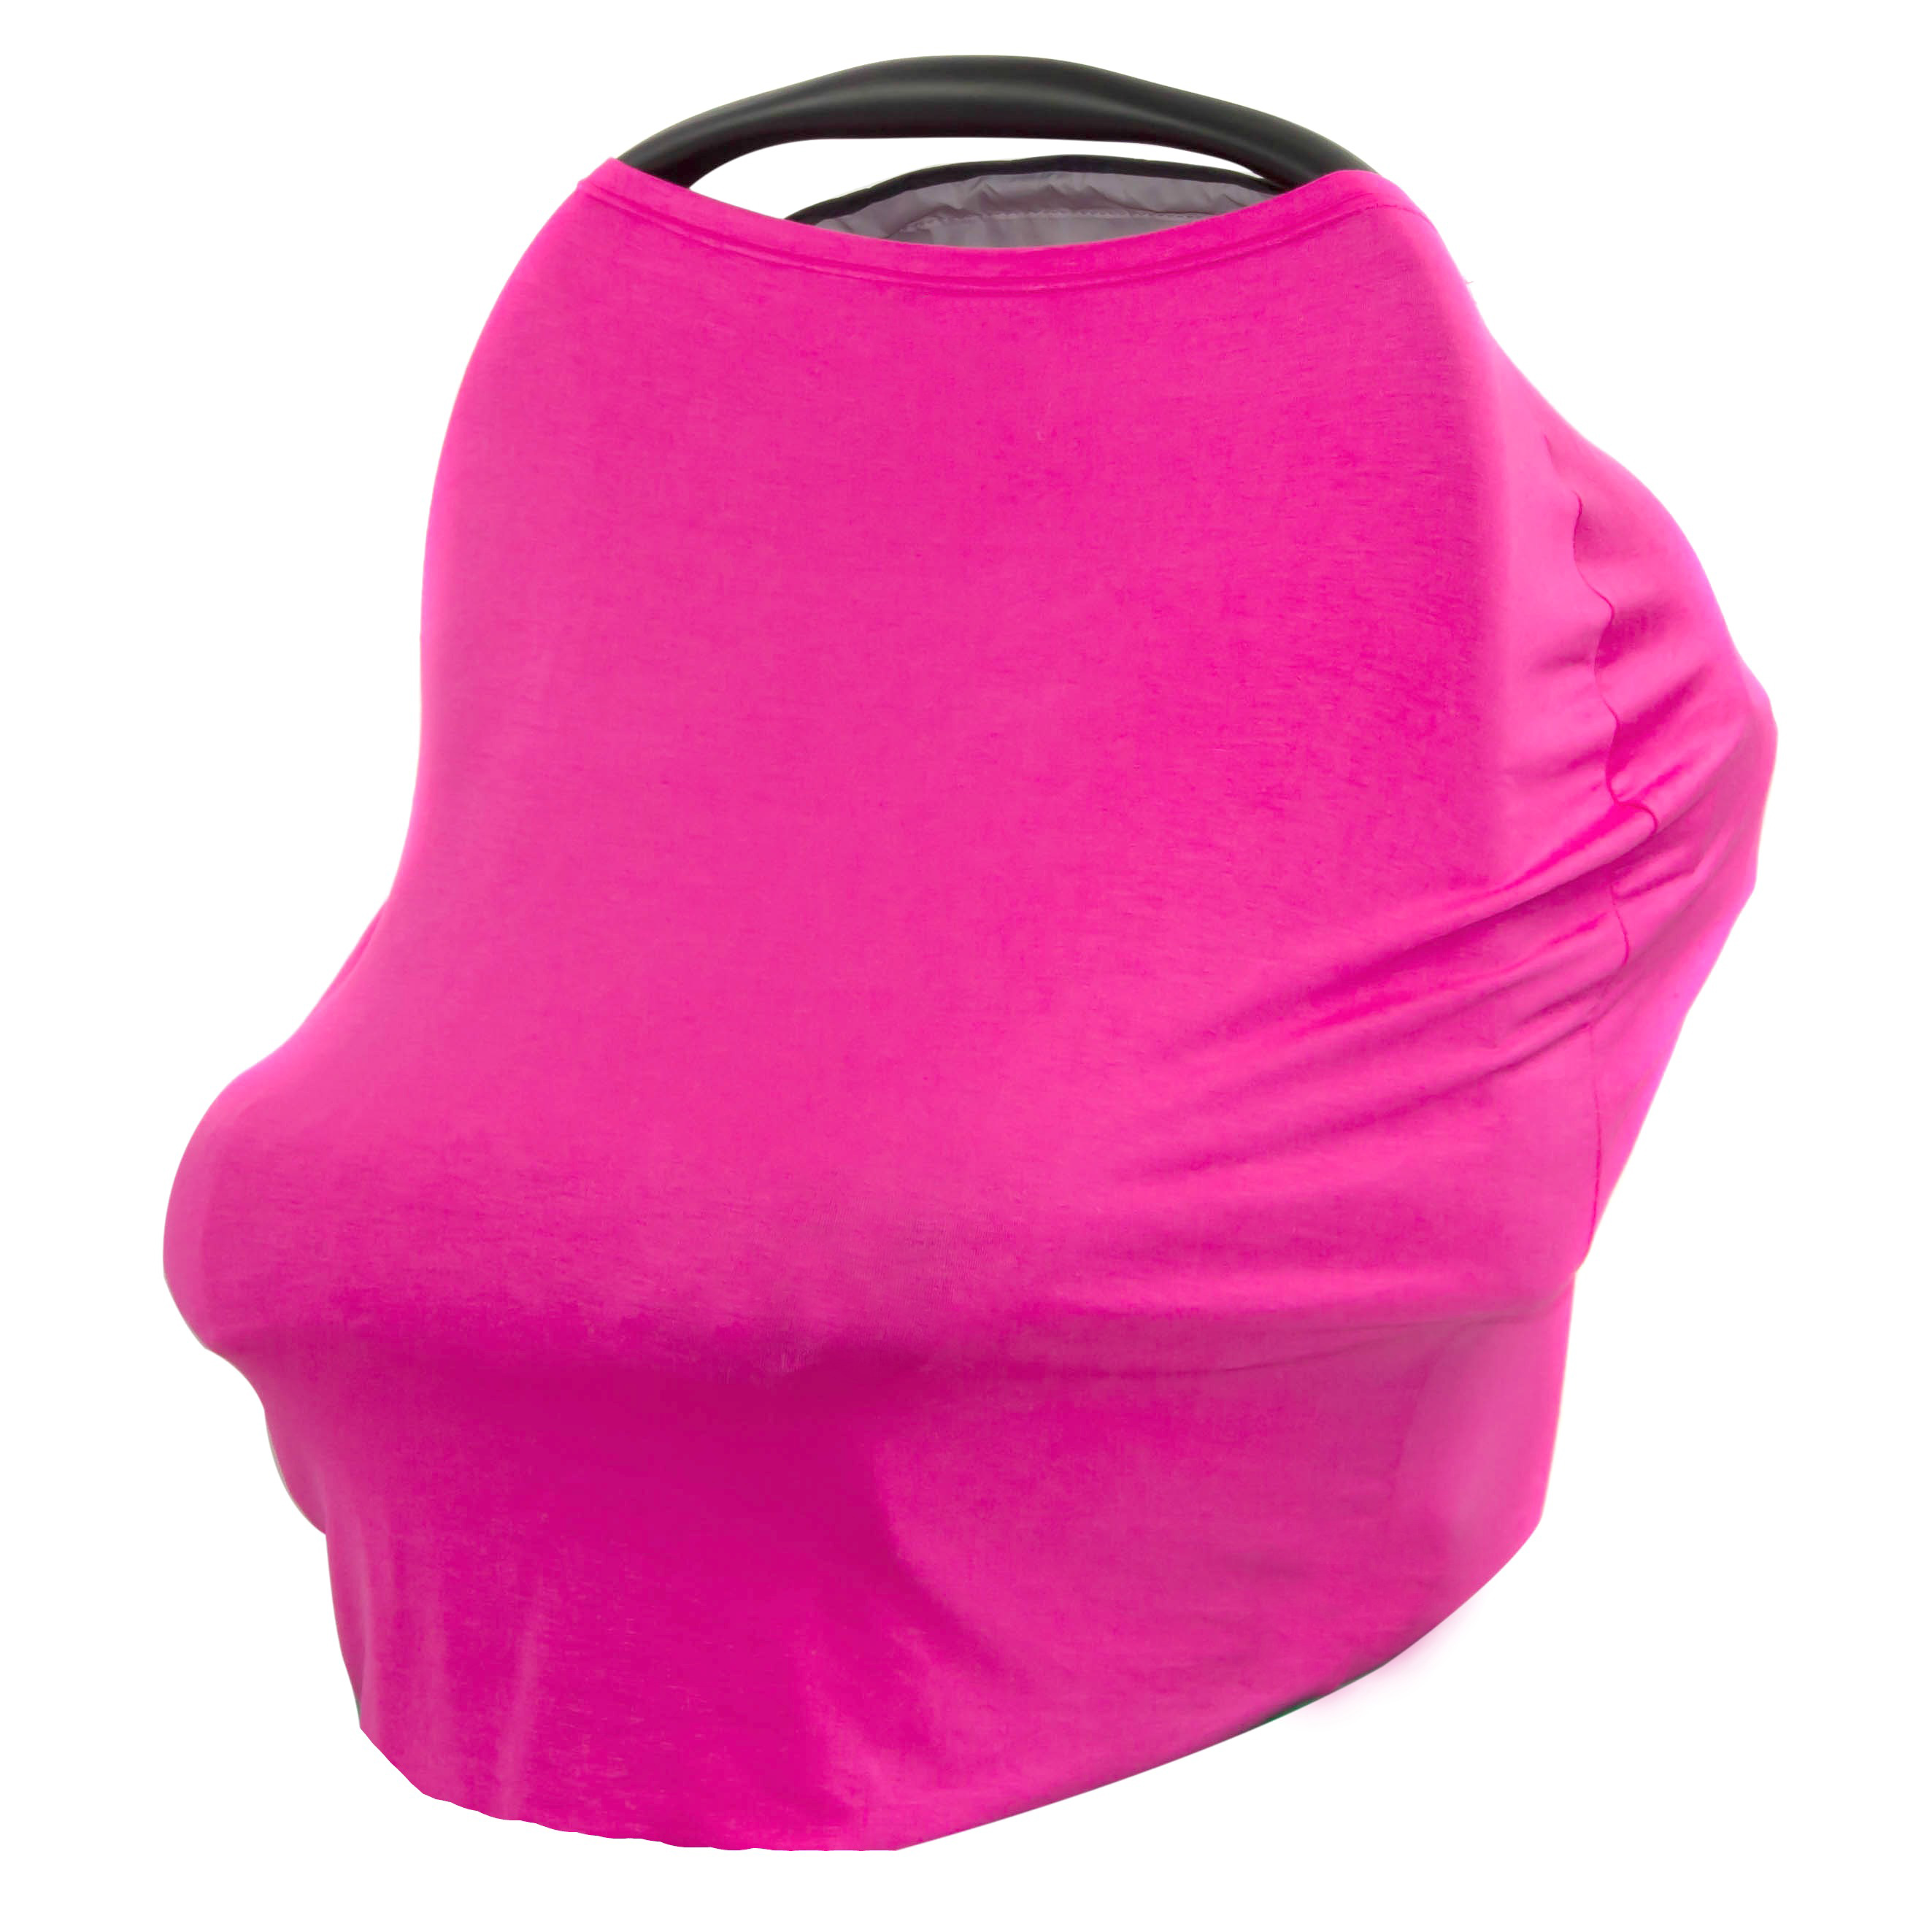 JLIKA Baby Car Seat Canopy Cover and Stretchy Nursing Cover - Azalea